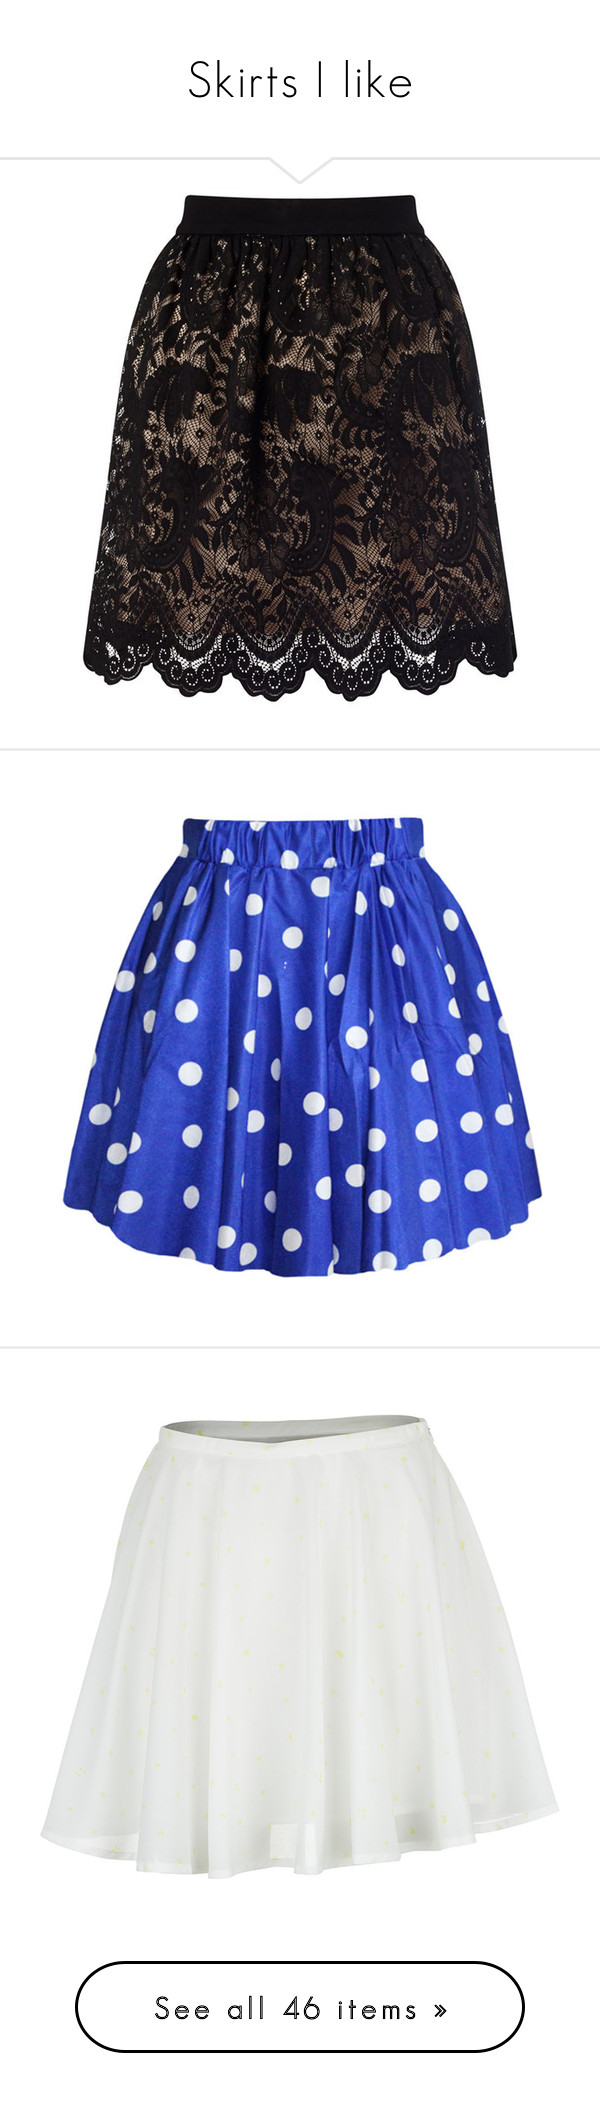 """Skirts I like"" by nerdbucket ❤ liked on Polyvore featuring skirts, lace skater skirt, tutu skirts, lacy skirt, flared skirt, knee length lace skirt, bottoms, blue, polka dot pleated skirt and blue skirt"